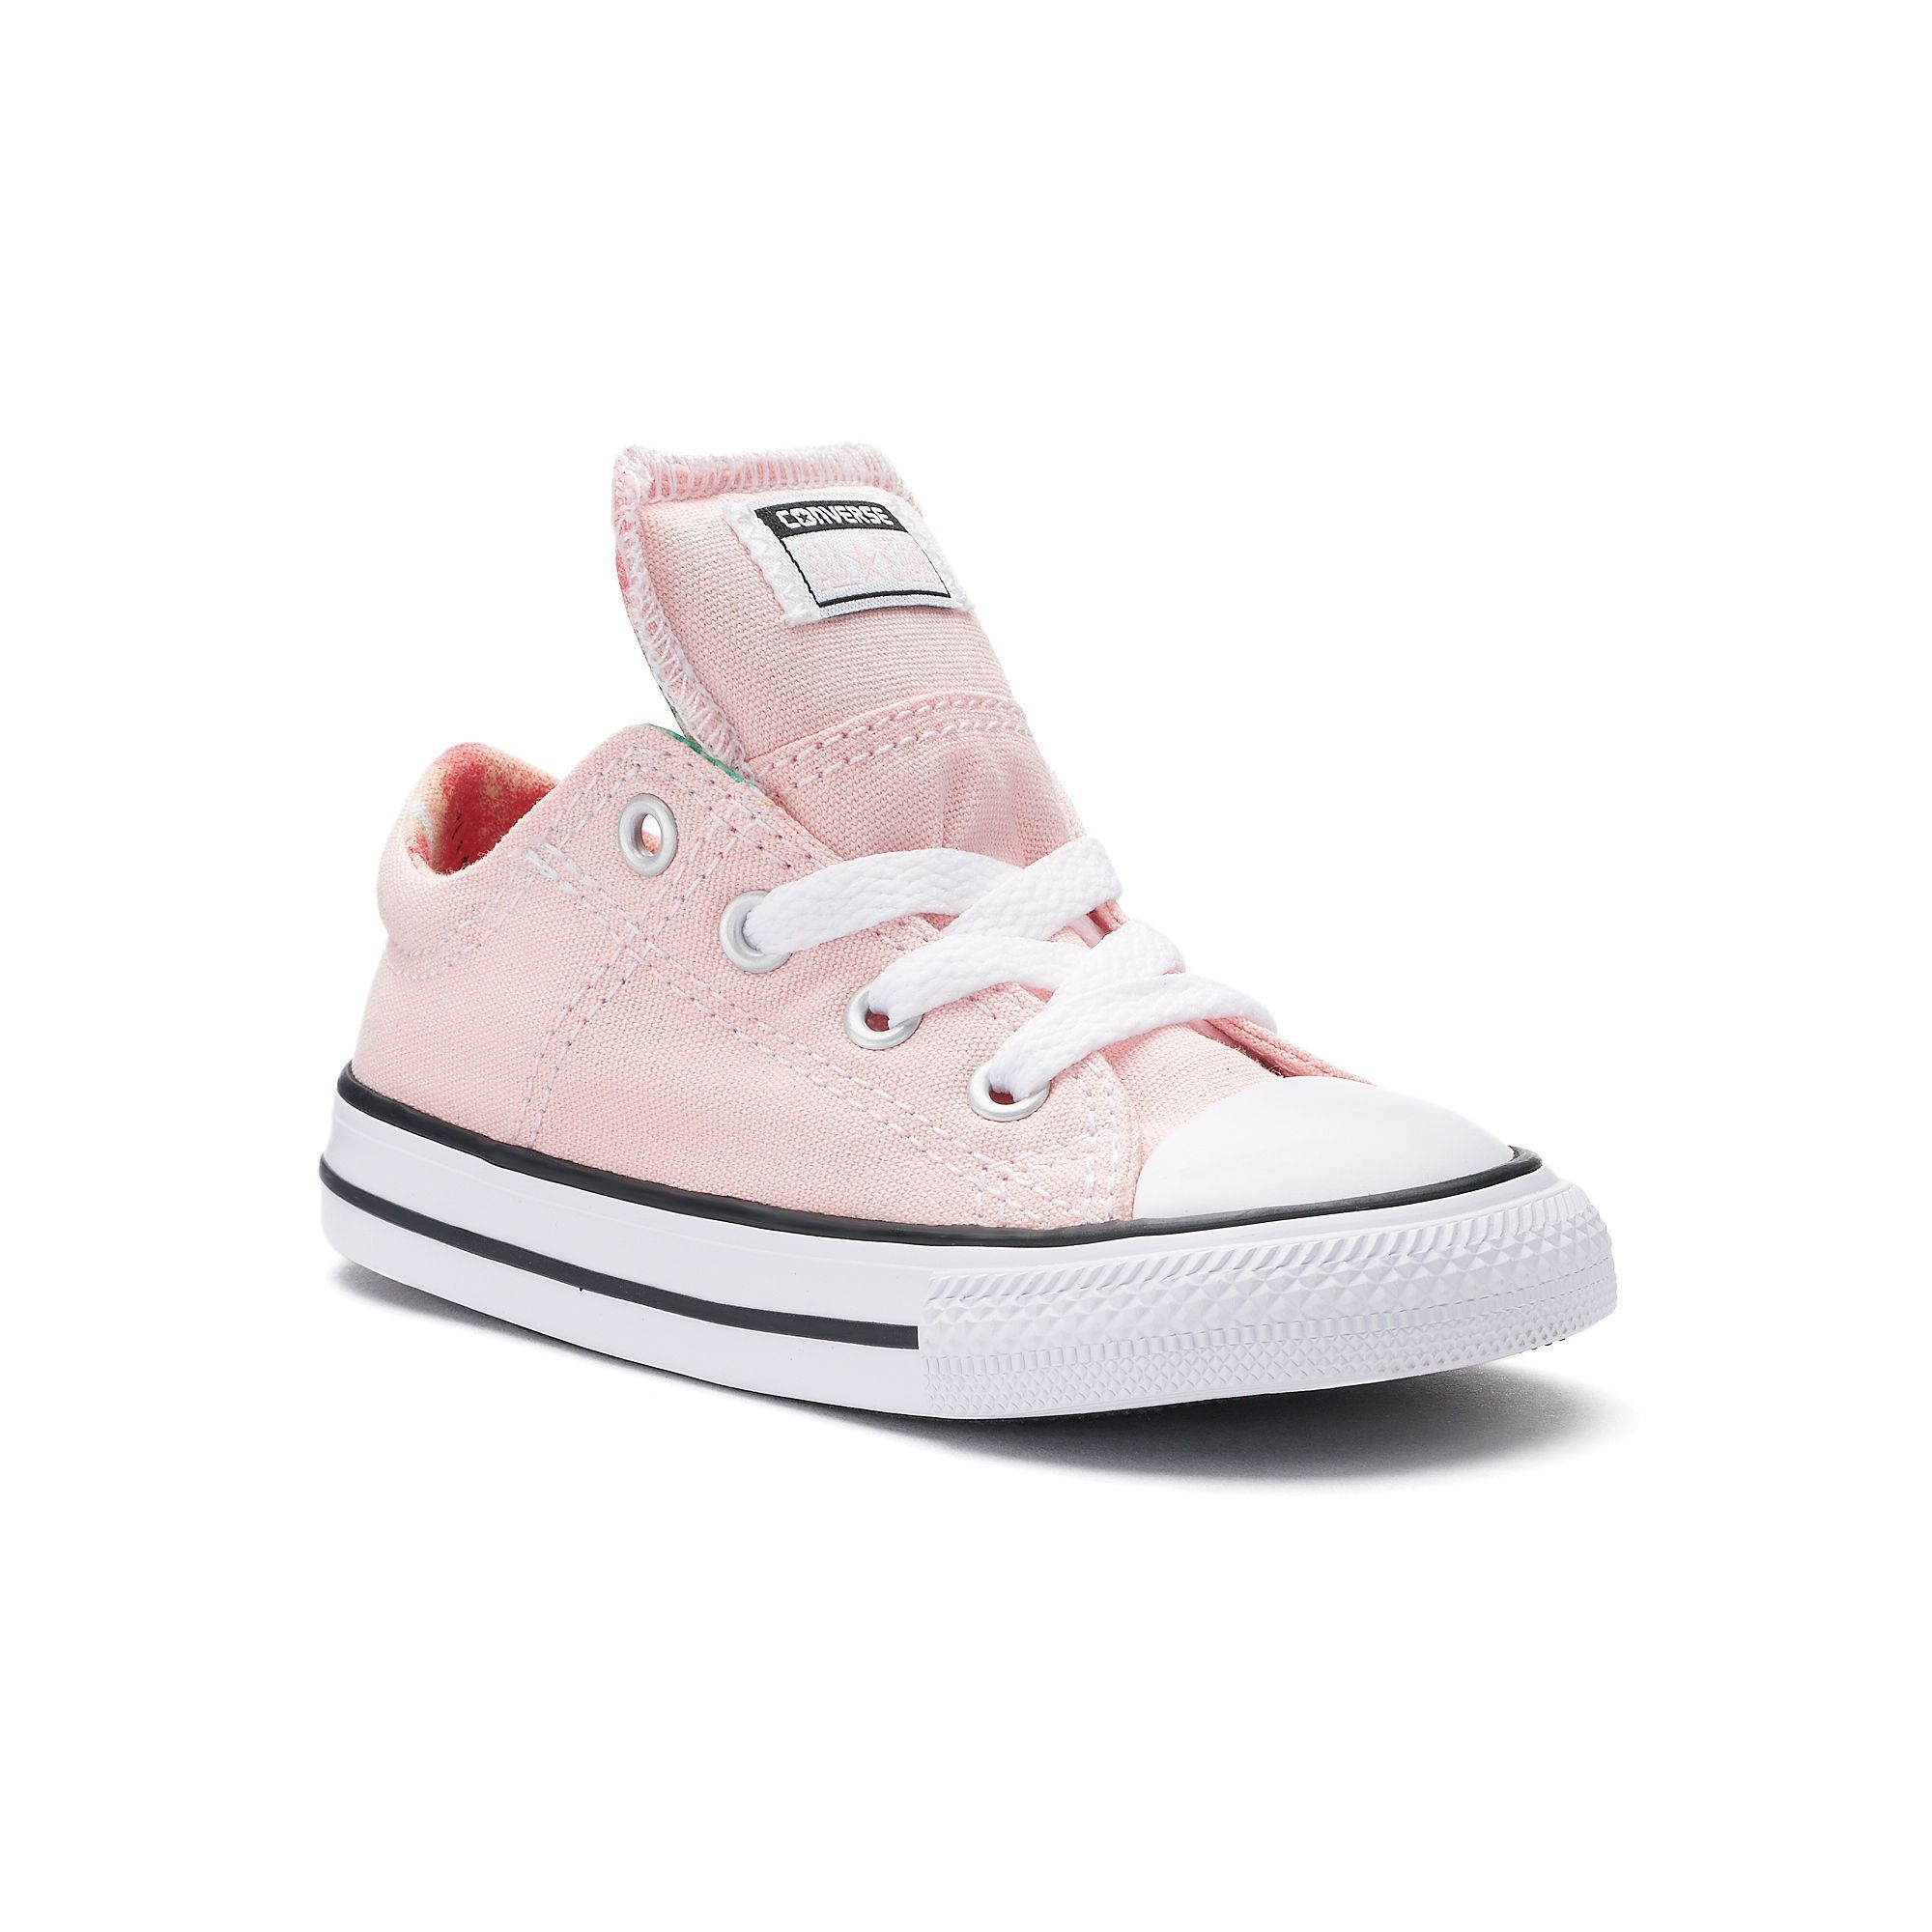 6f11183c0be3 Converse Toddler Chuck Taylor All Star Madison Shoes in 2019 ...